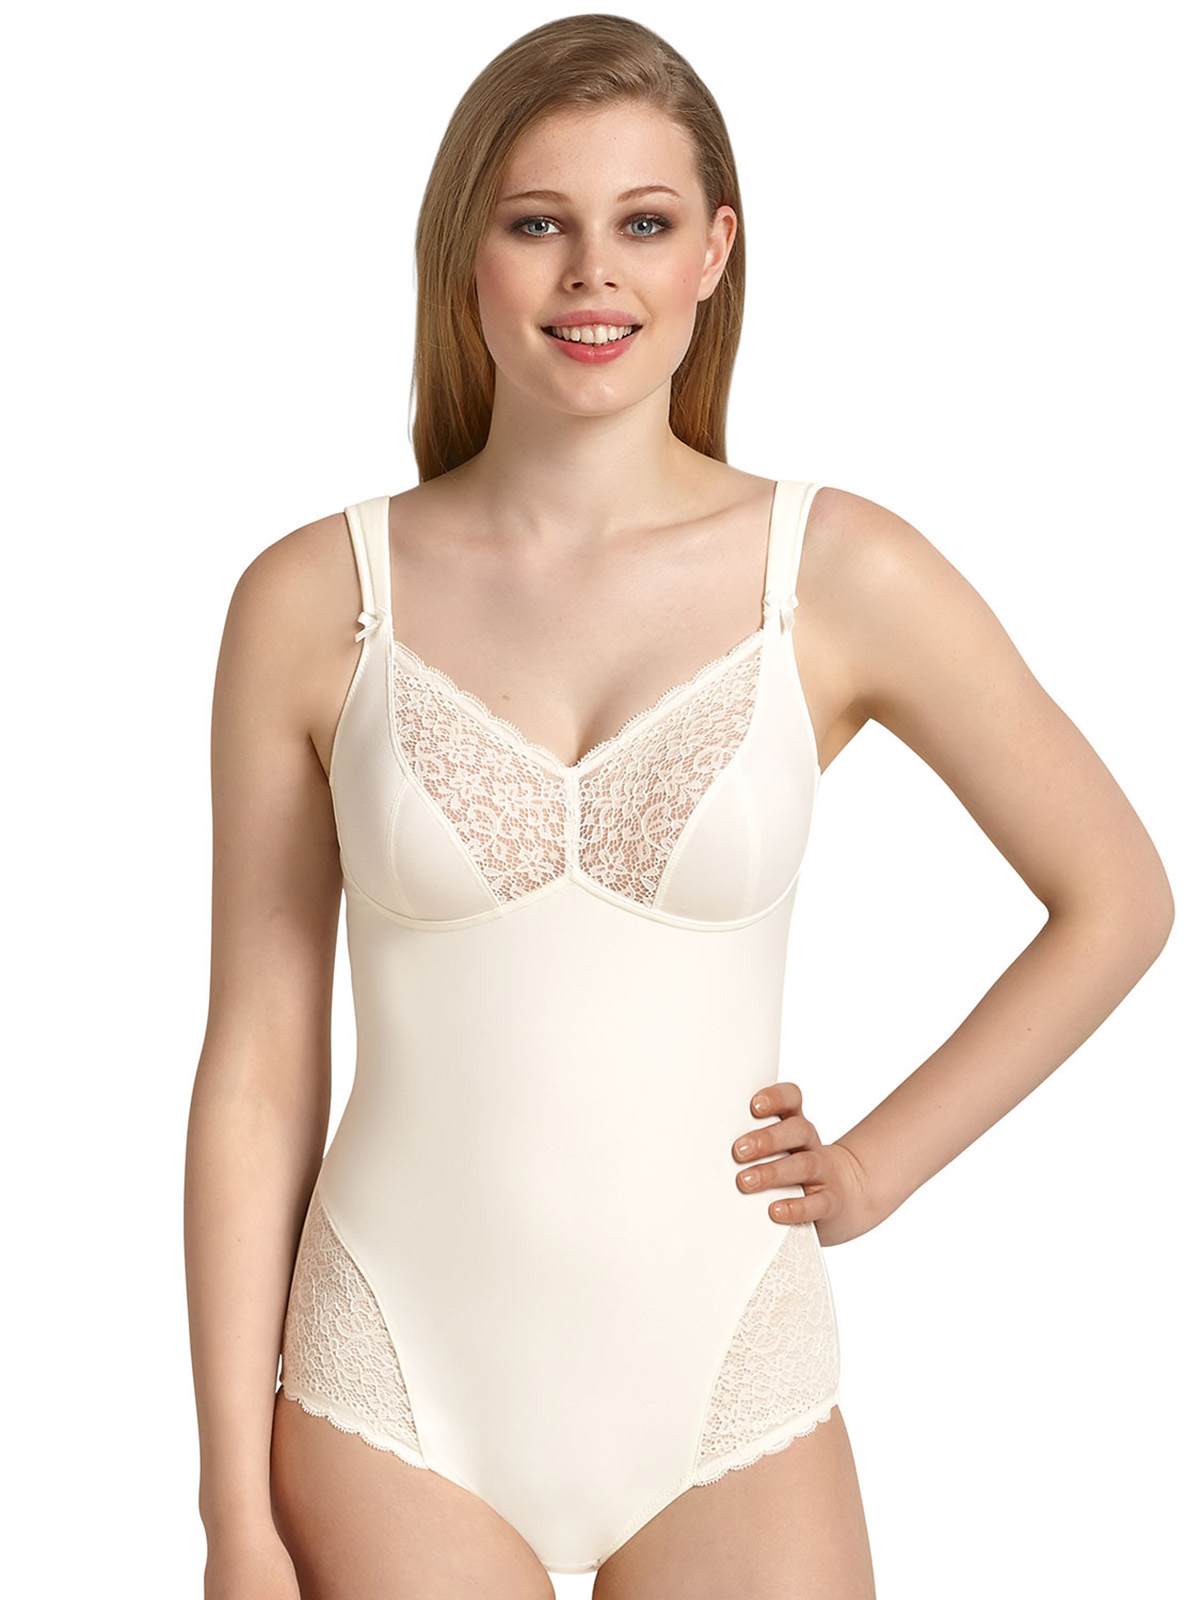 bc5e38a802aef Details about Havanna Wire Free Comfort Corselette Crystal 3512 by Anita  Comfort